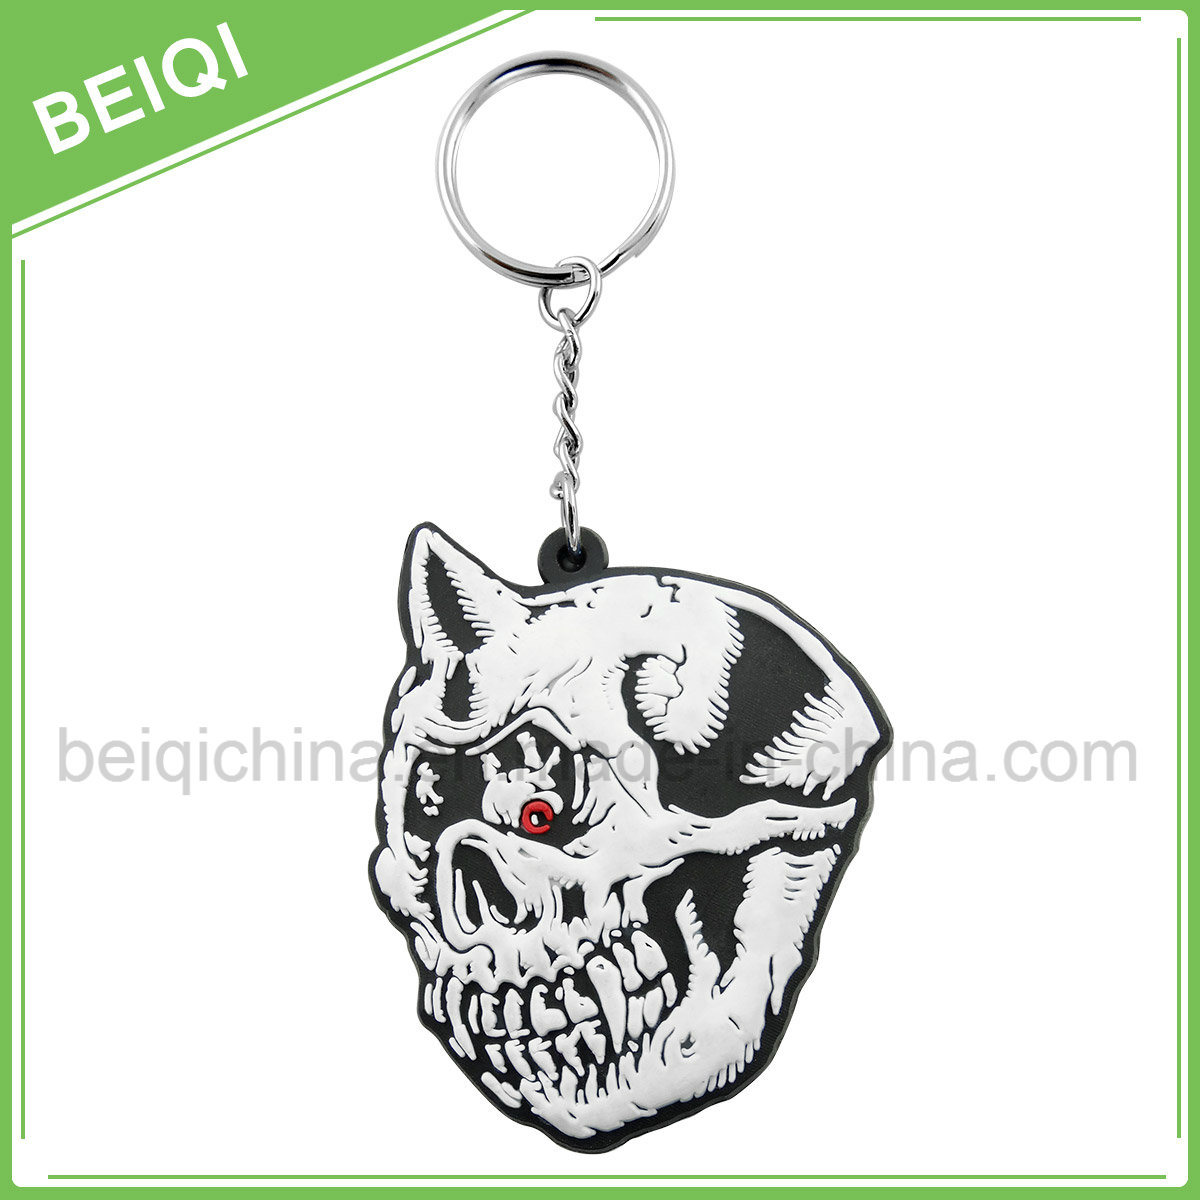 Professional Customized Soft PVC Rubber 2D /3D Key Chain